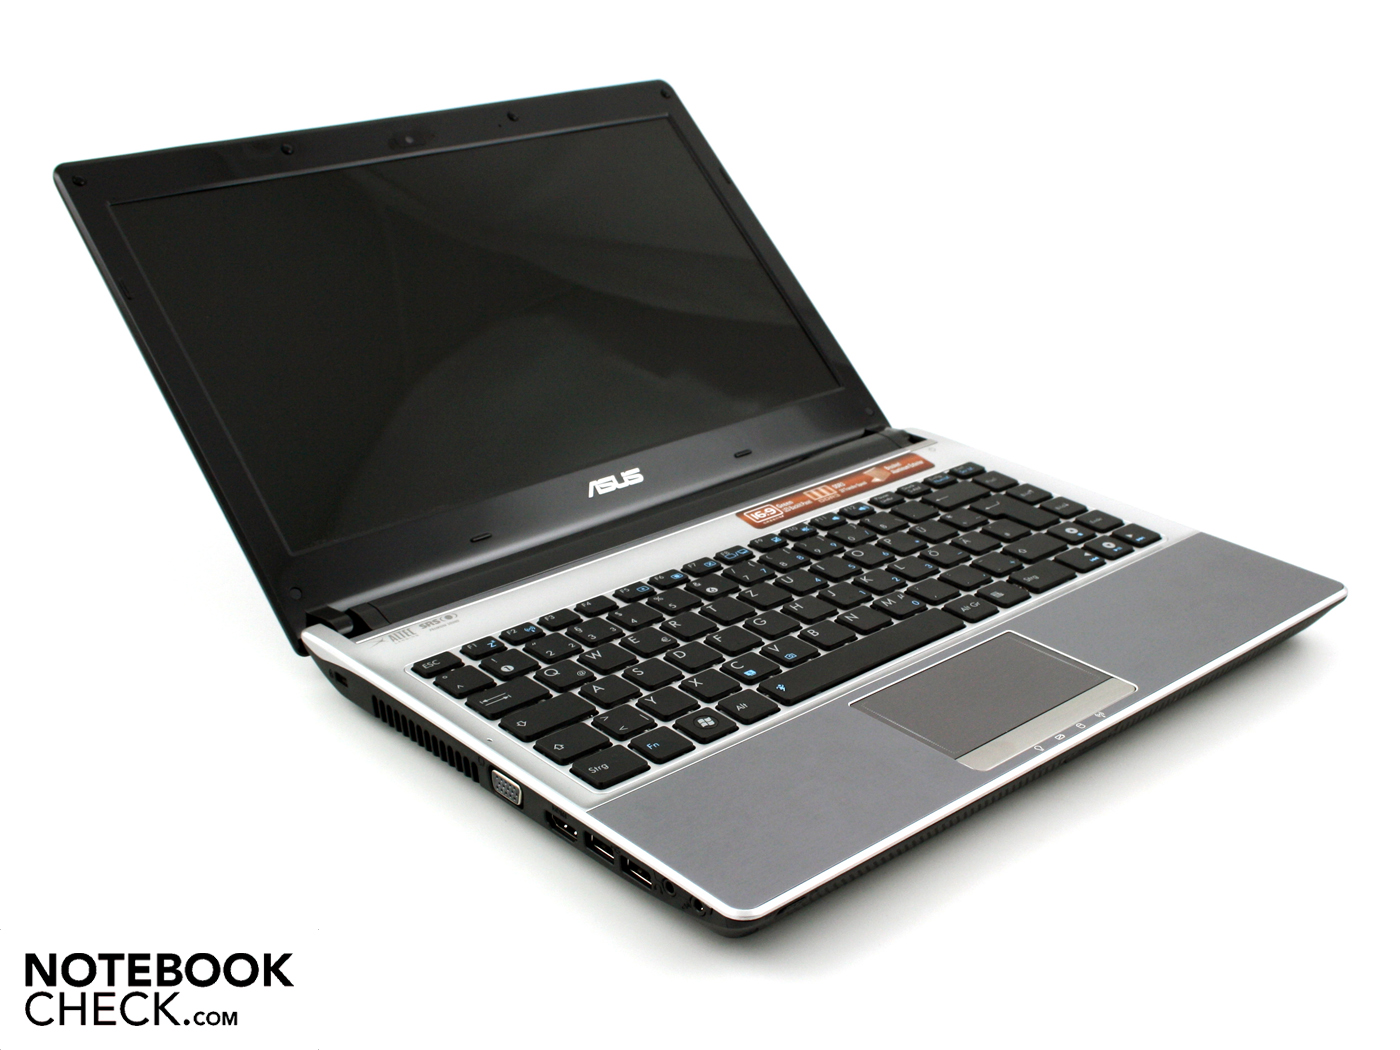 Asus U30JC Notebook Intel 1000 WiFi Driver for Mac Download